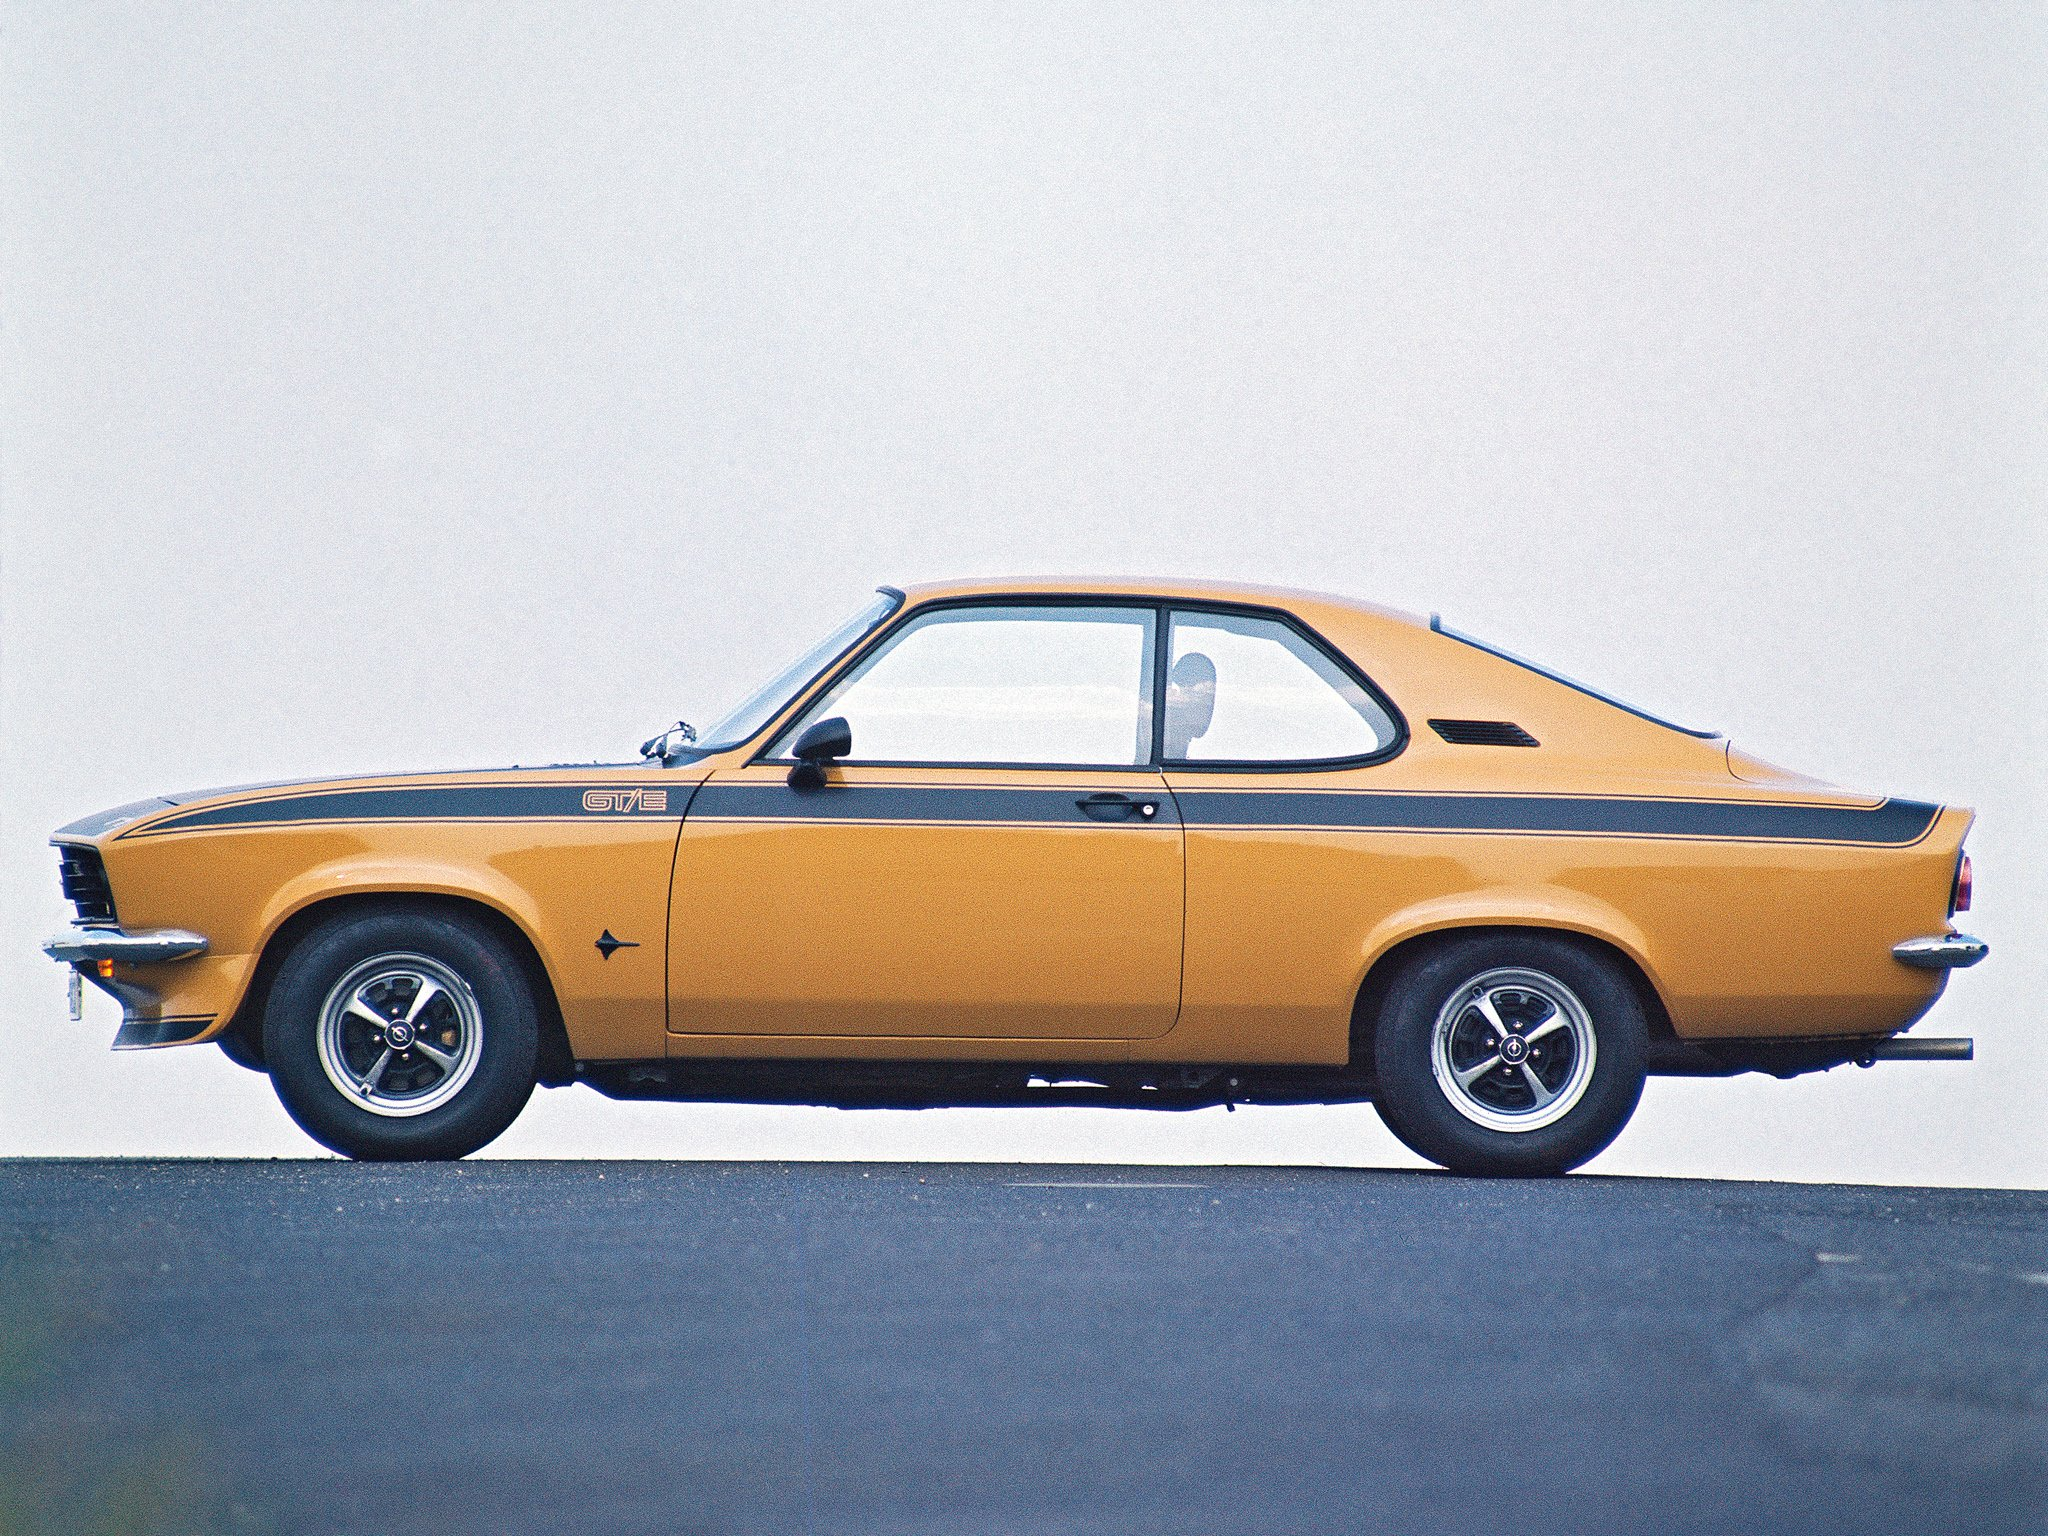 1974 opel manta gte t wallpaper 2048x1536 298205 wallpaperup. Black Bedroom Furniture Sets. Home Design Ideas